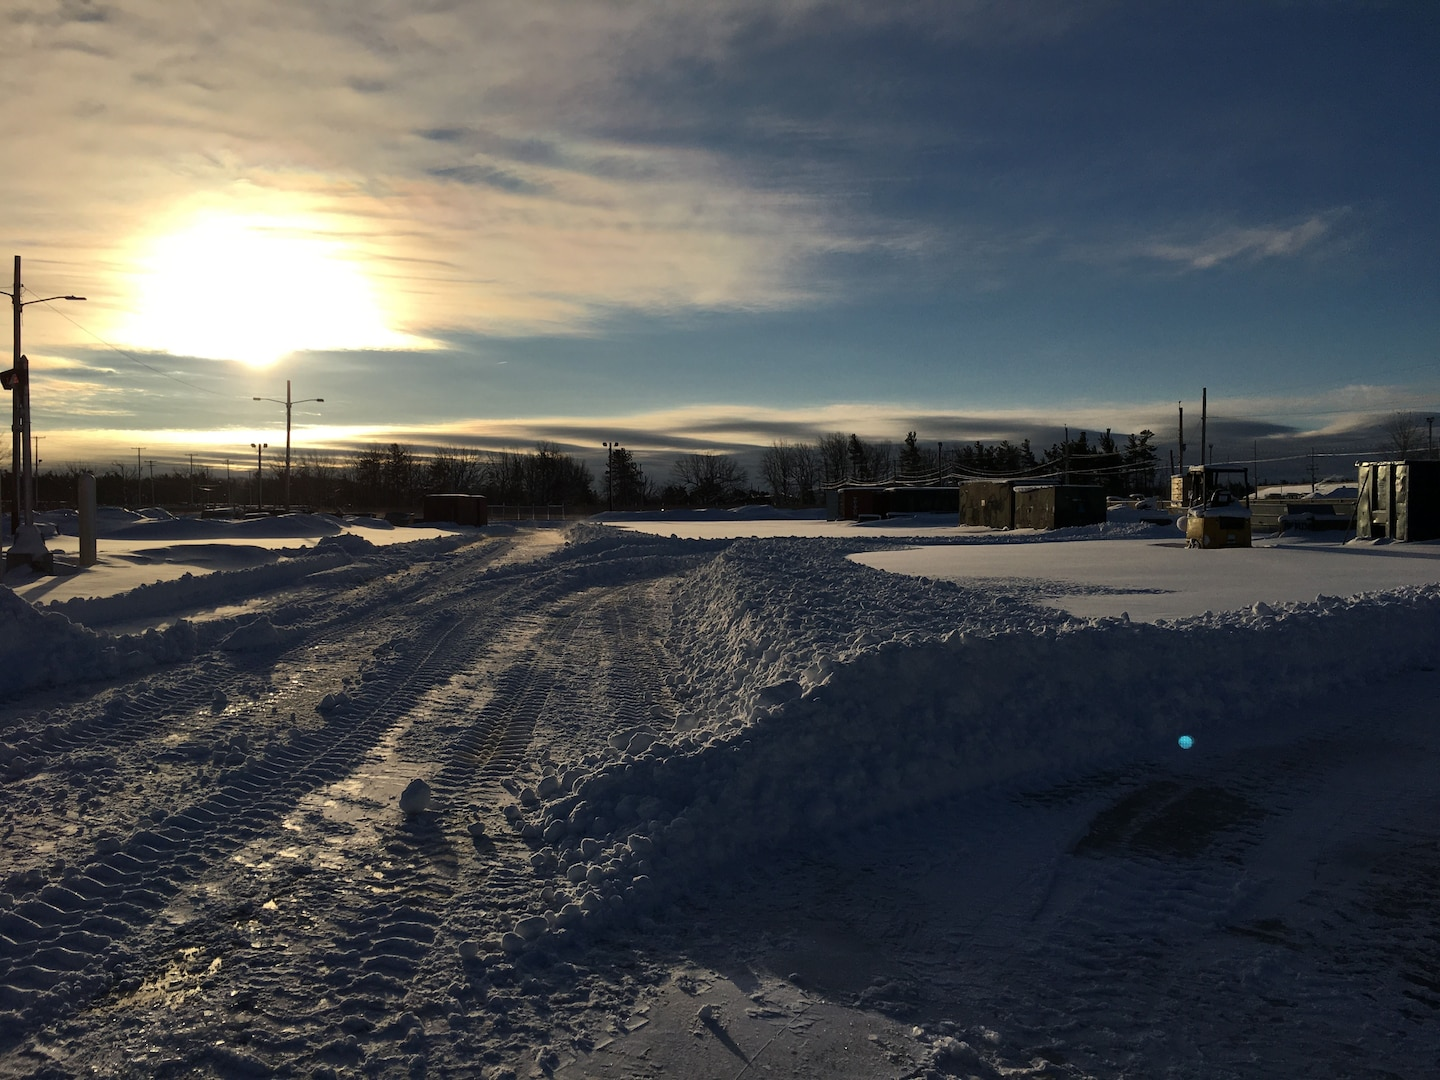 A snowy sunrise at the DLA Disposition Services site at Ft. Drum, New York.